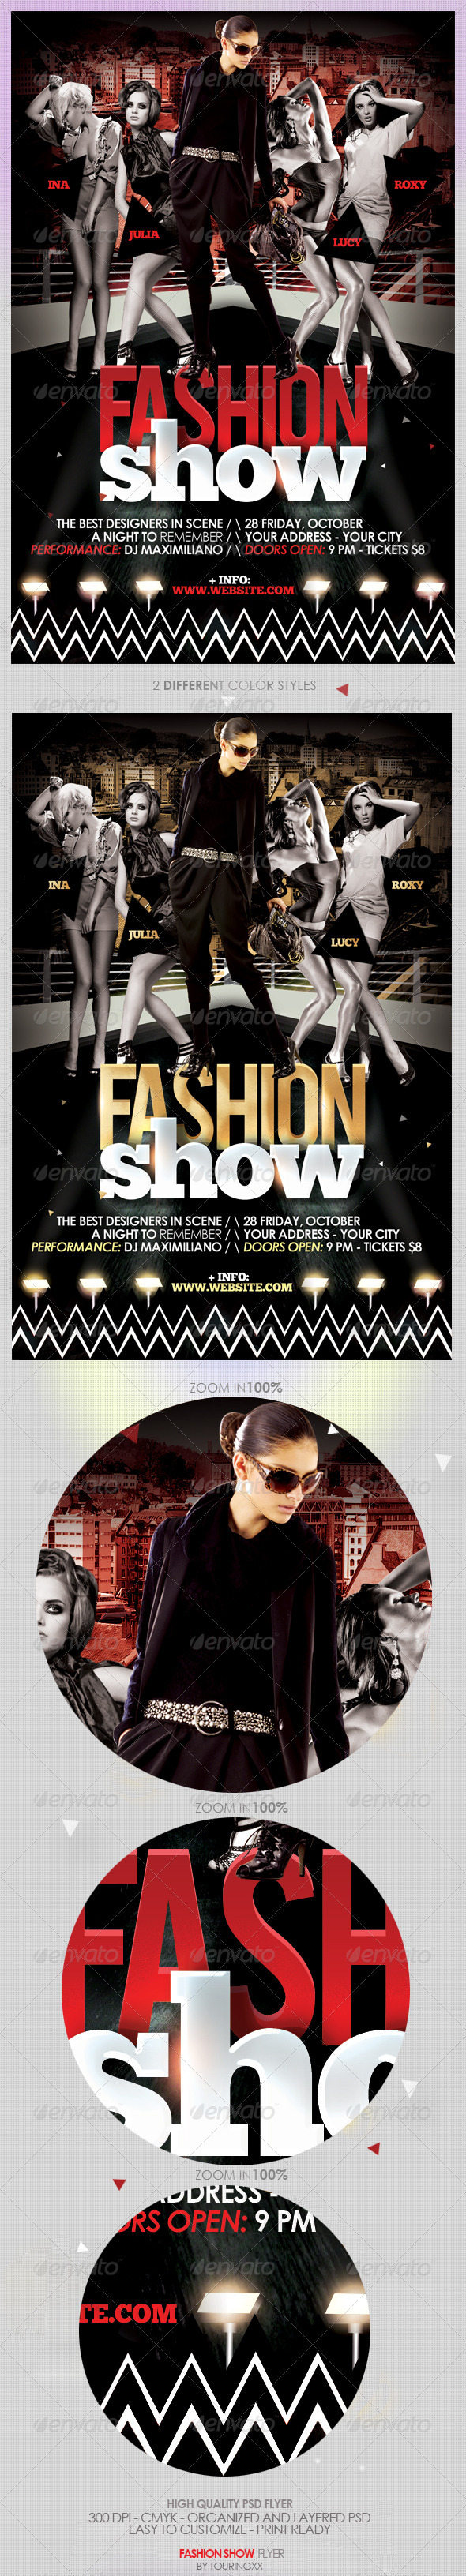 Fashion Show Flyer Template - Vol 2 - Clubs & Parties Events